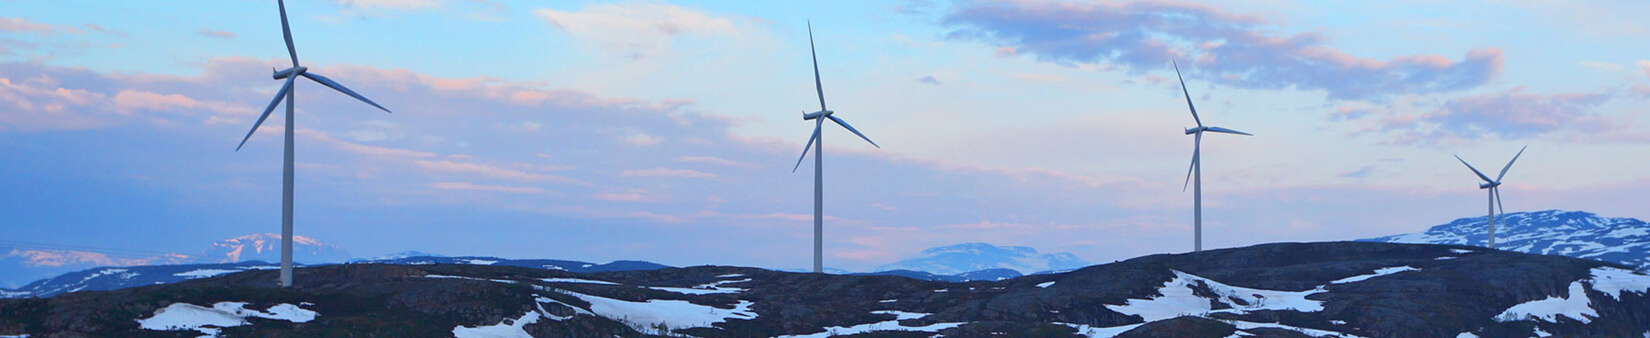 <h2>Wind can do more than just move air. It can power entire nations.</h2>